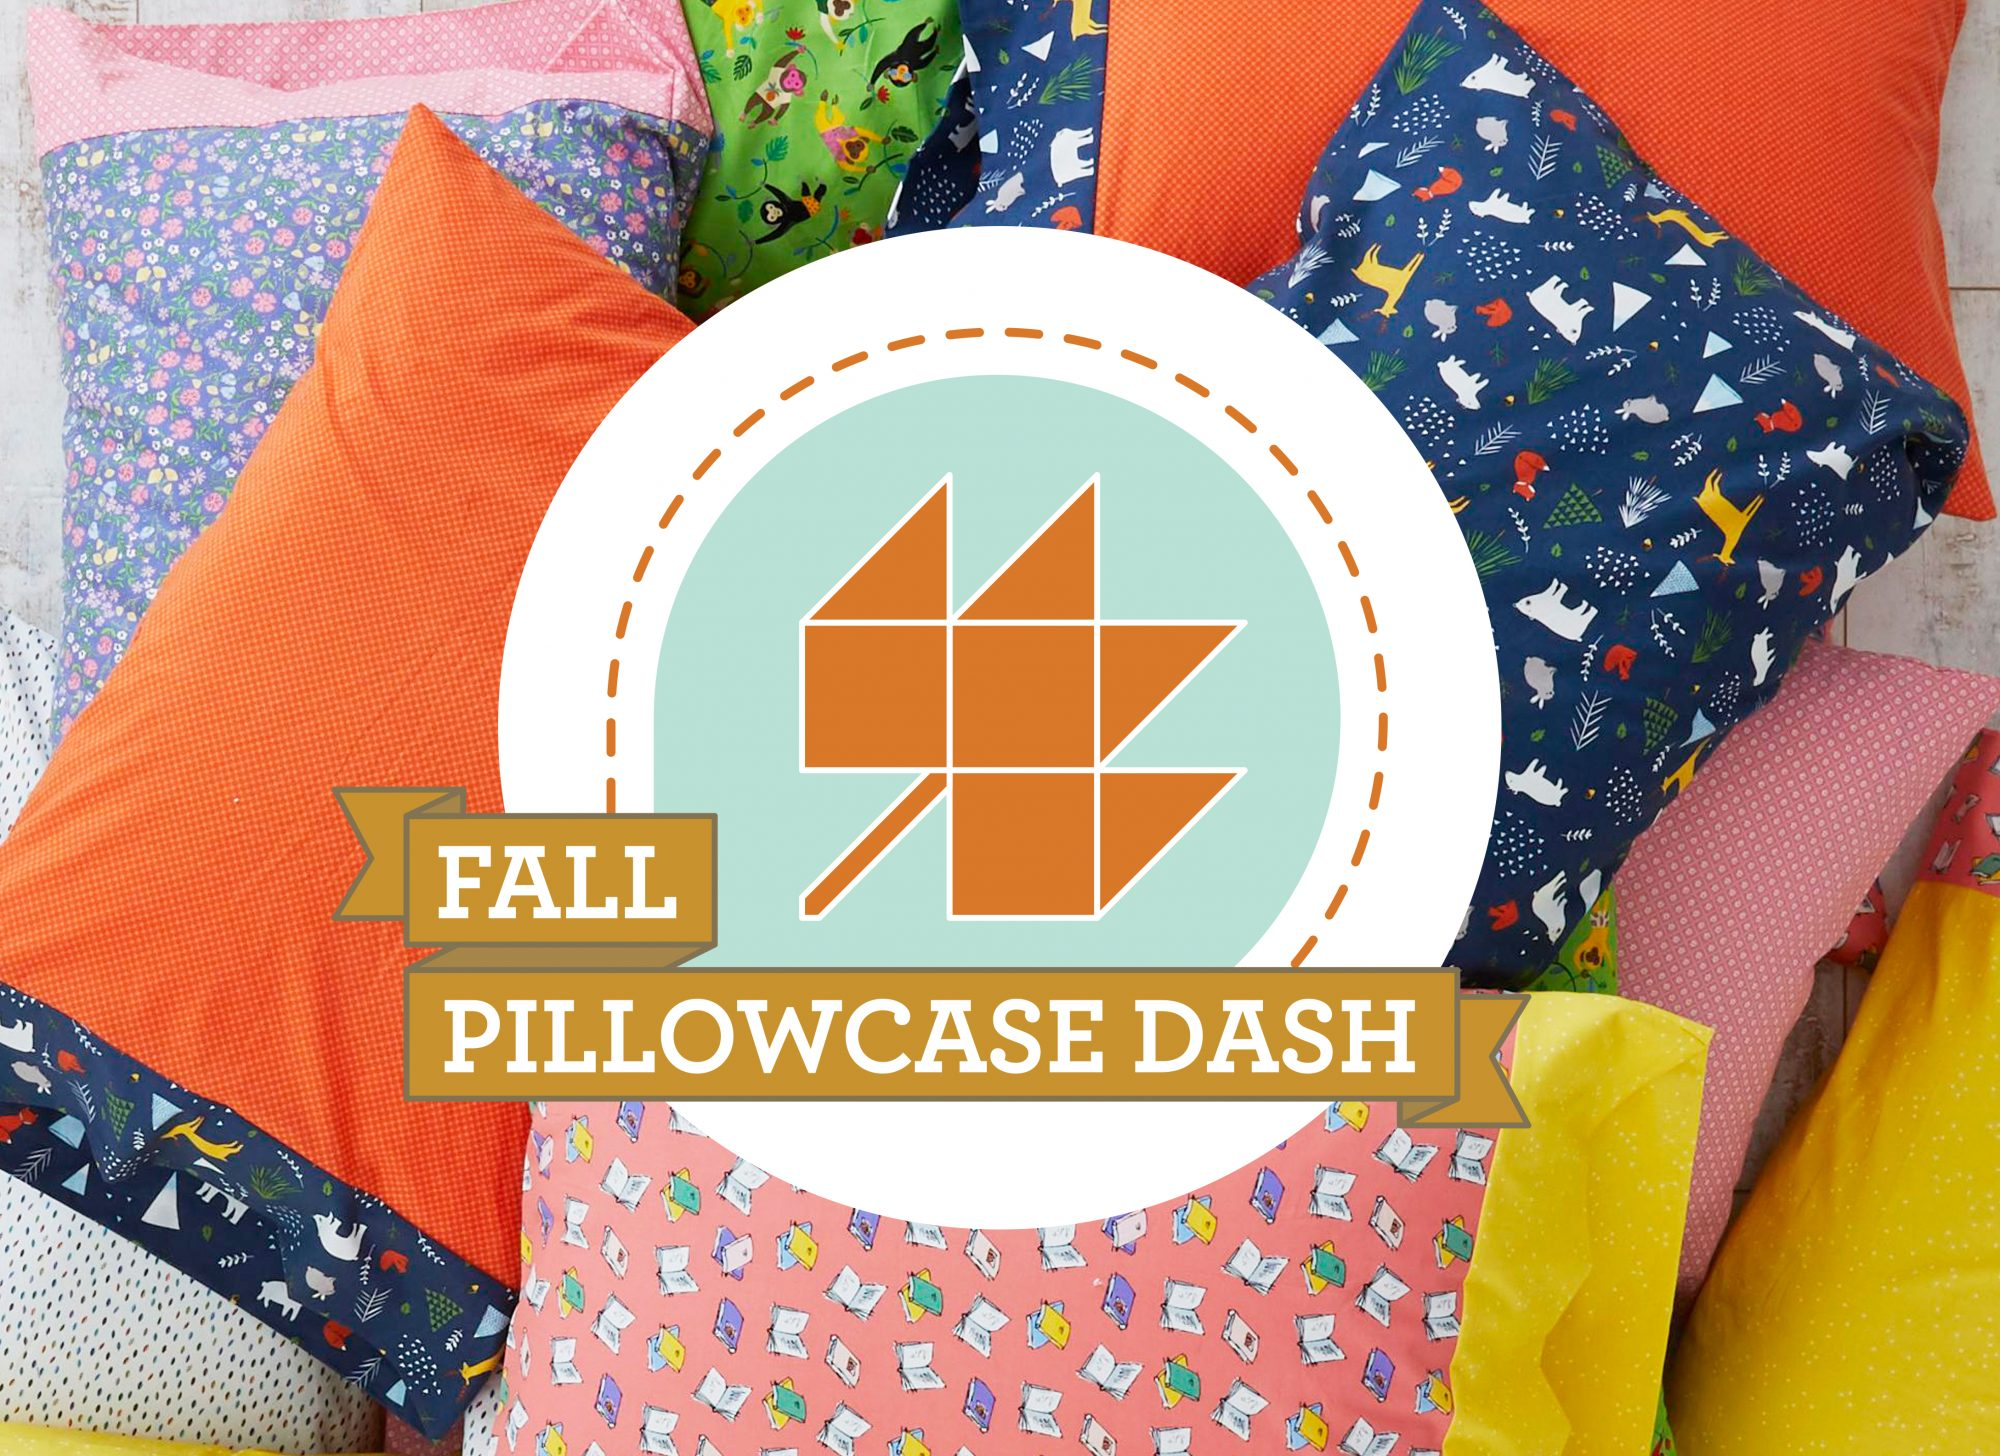 Fall Pillowcase Dash Logo